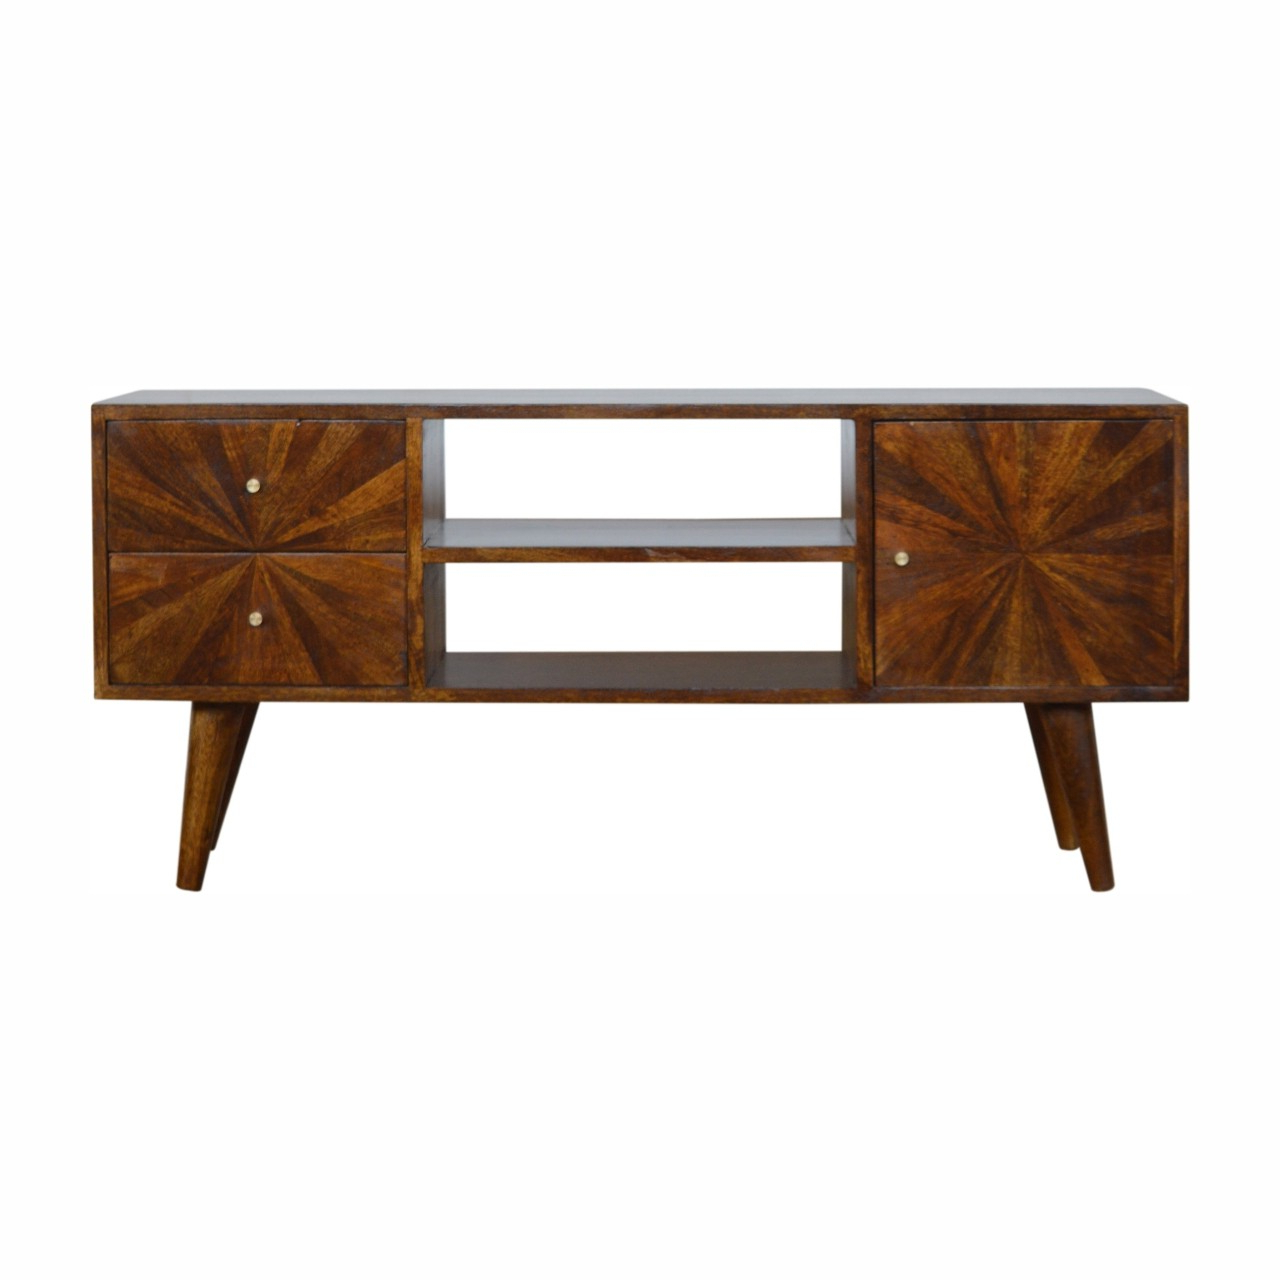 Solid Mango Wood Scandinavian Style Sunrise Patterned 1 Intended For Scandi 2 Drawer White Tv Media Unit Stands (View 18 of 20)